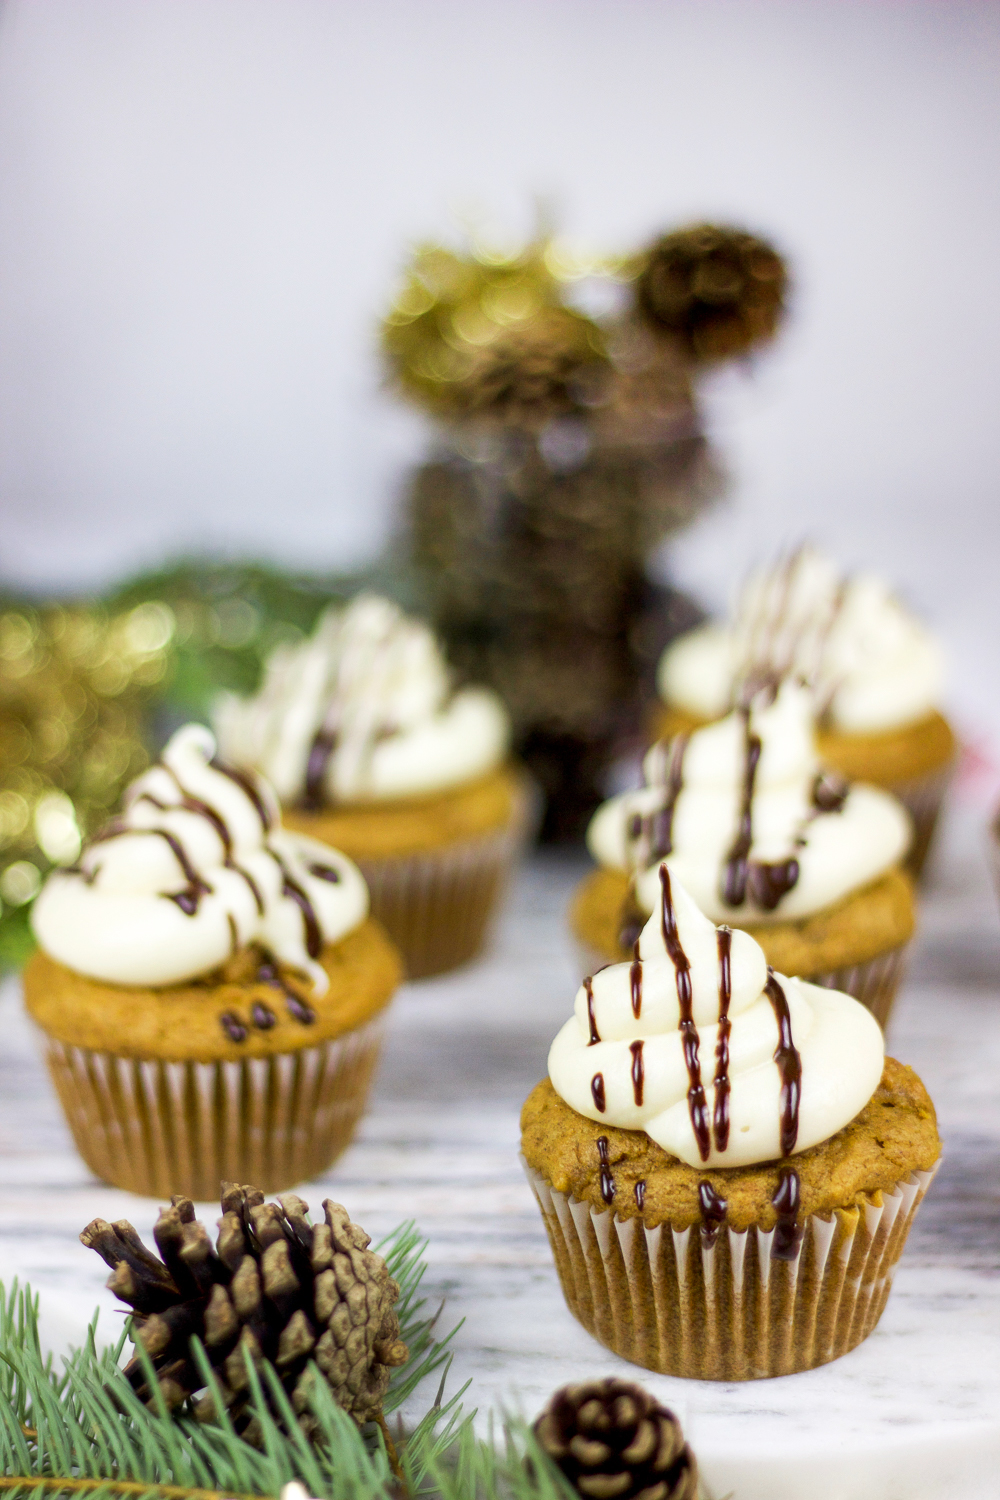 Pumpkin spice cupcakes with a chocolate ganache filling, topped with cream cheese frosting